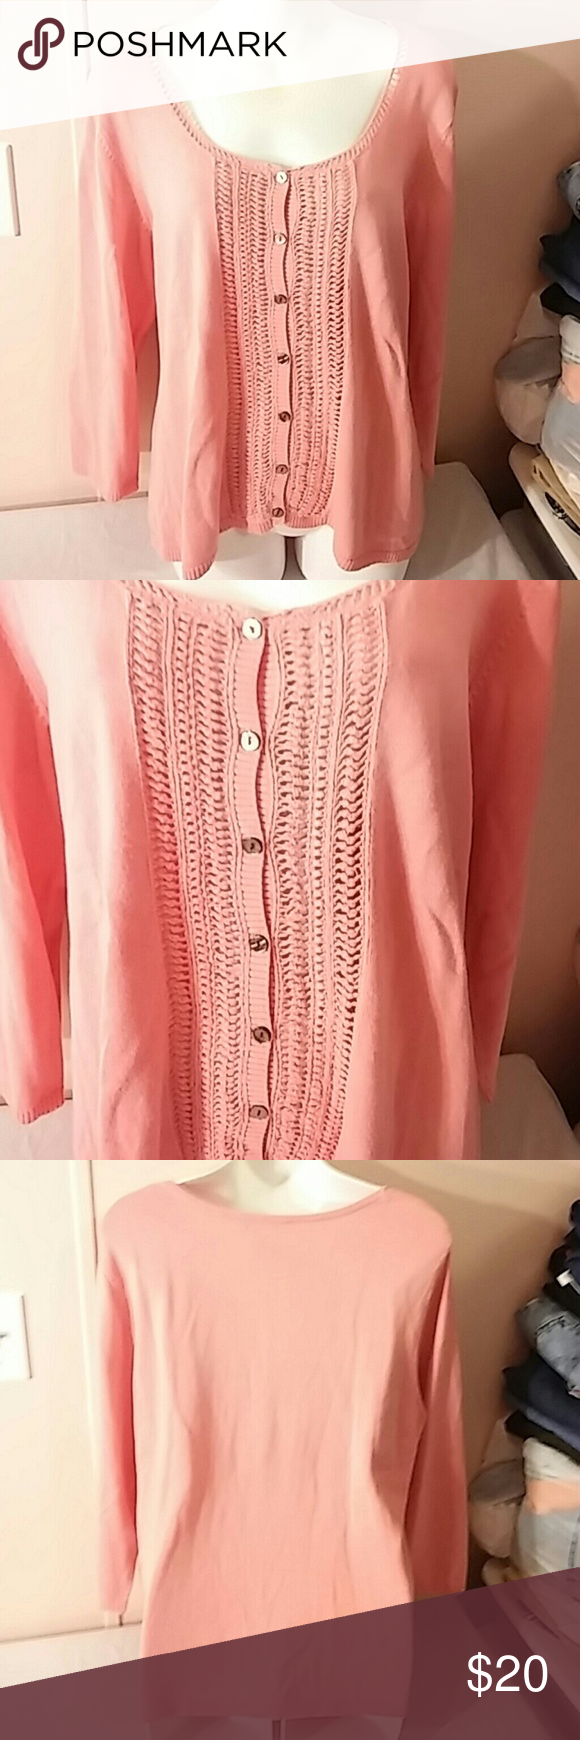 Evan Picone Pink Cardigan Sweater Women's XL Pink button down ...